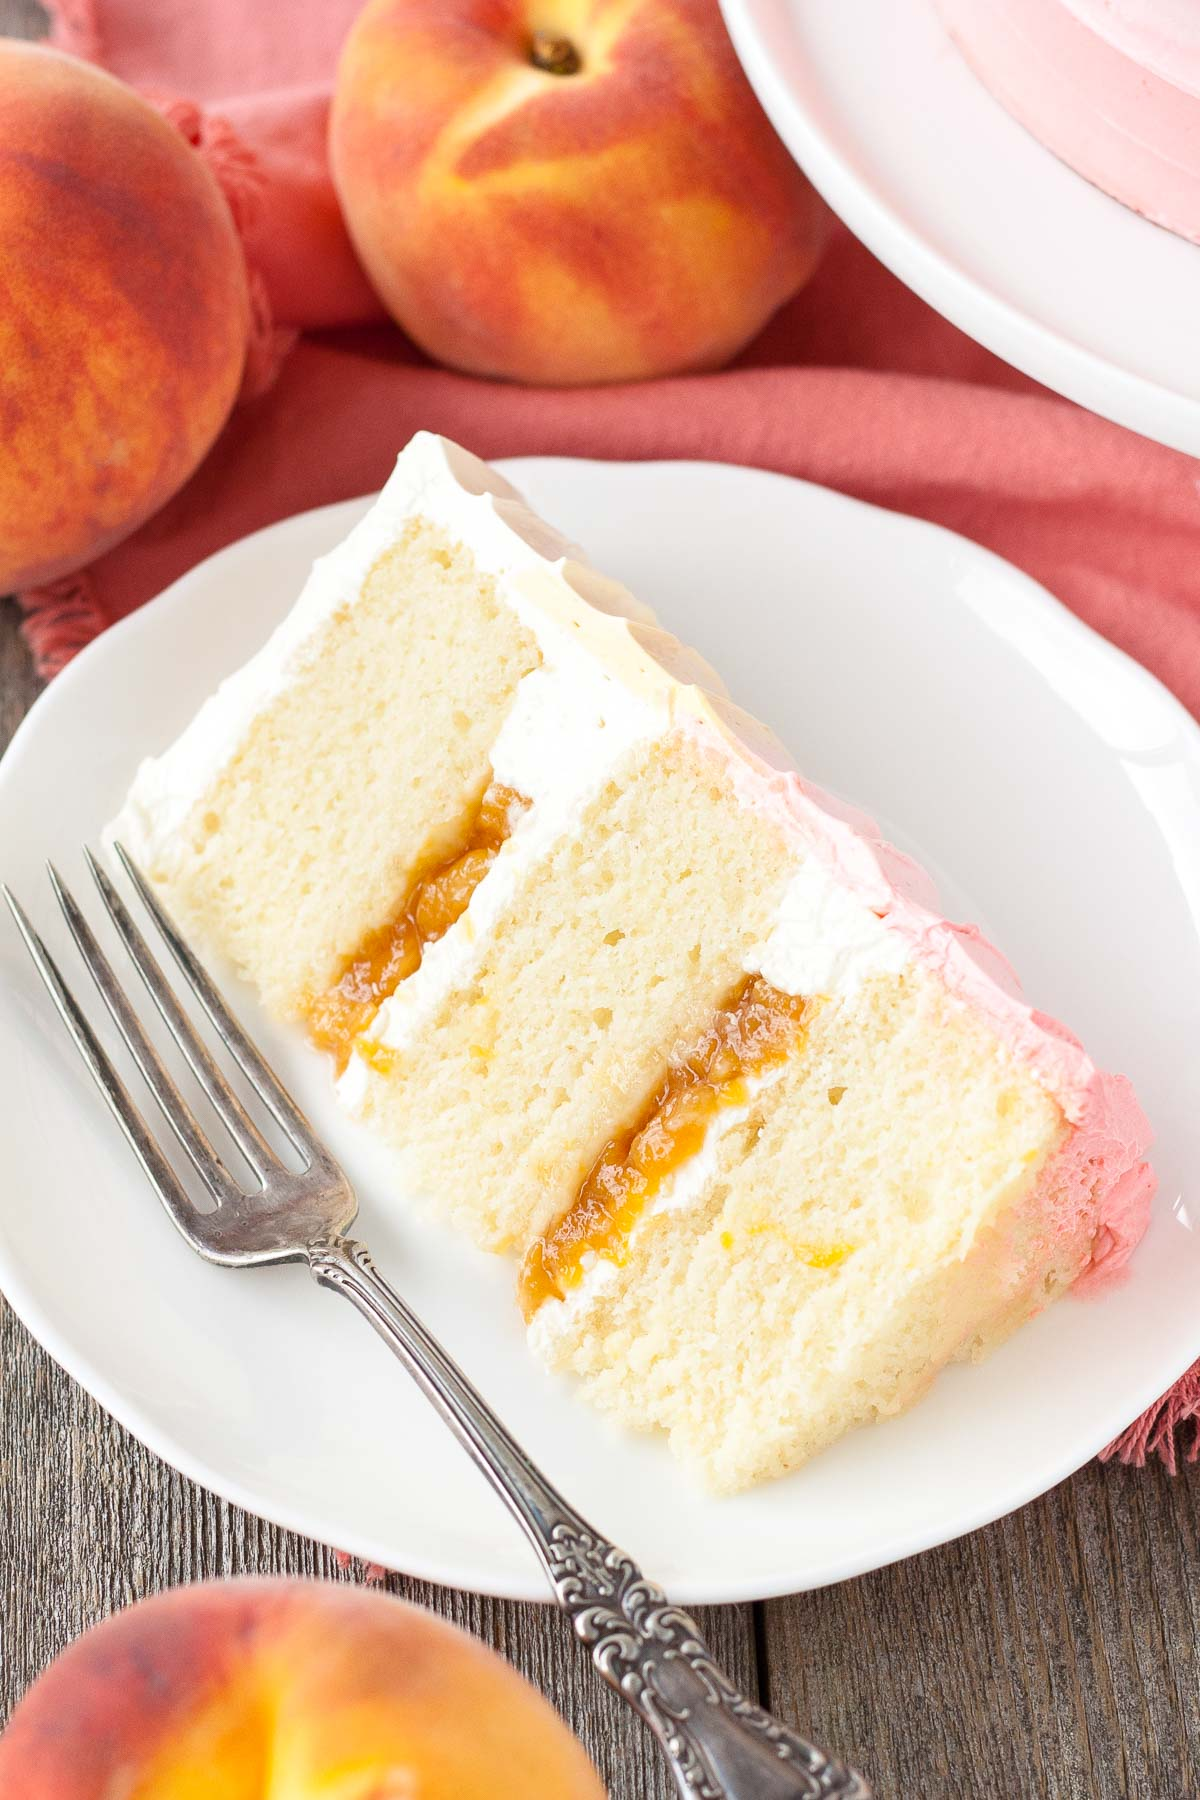 Slice of peach cake on a plate.